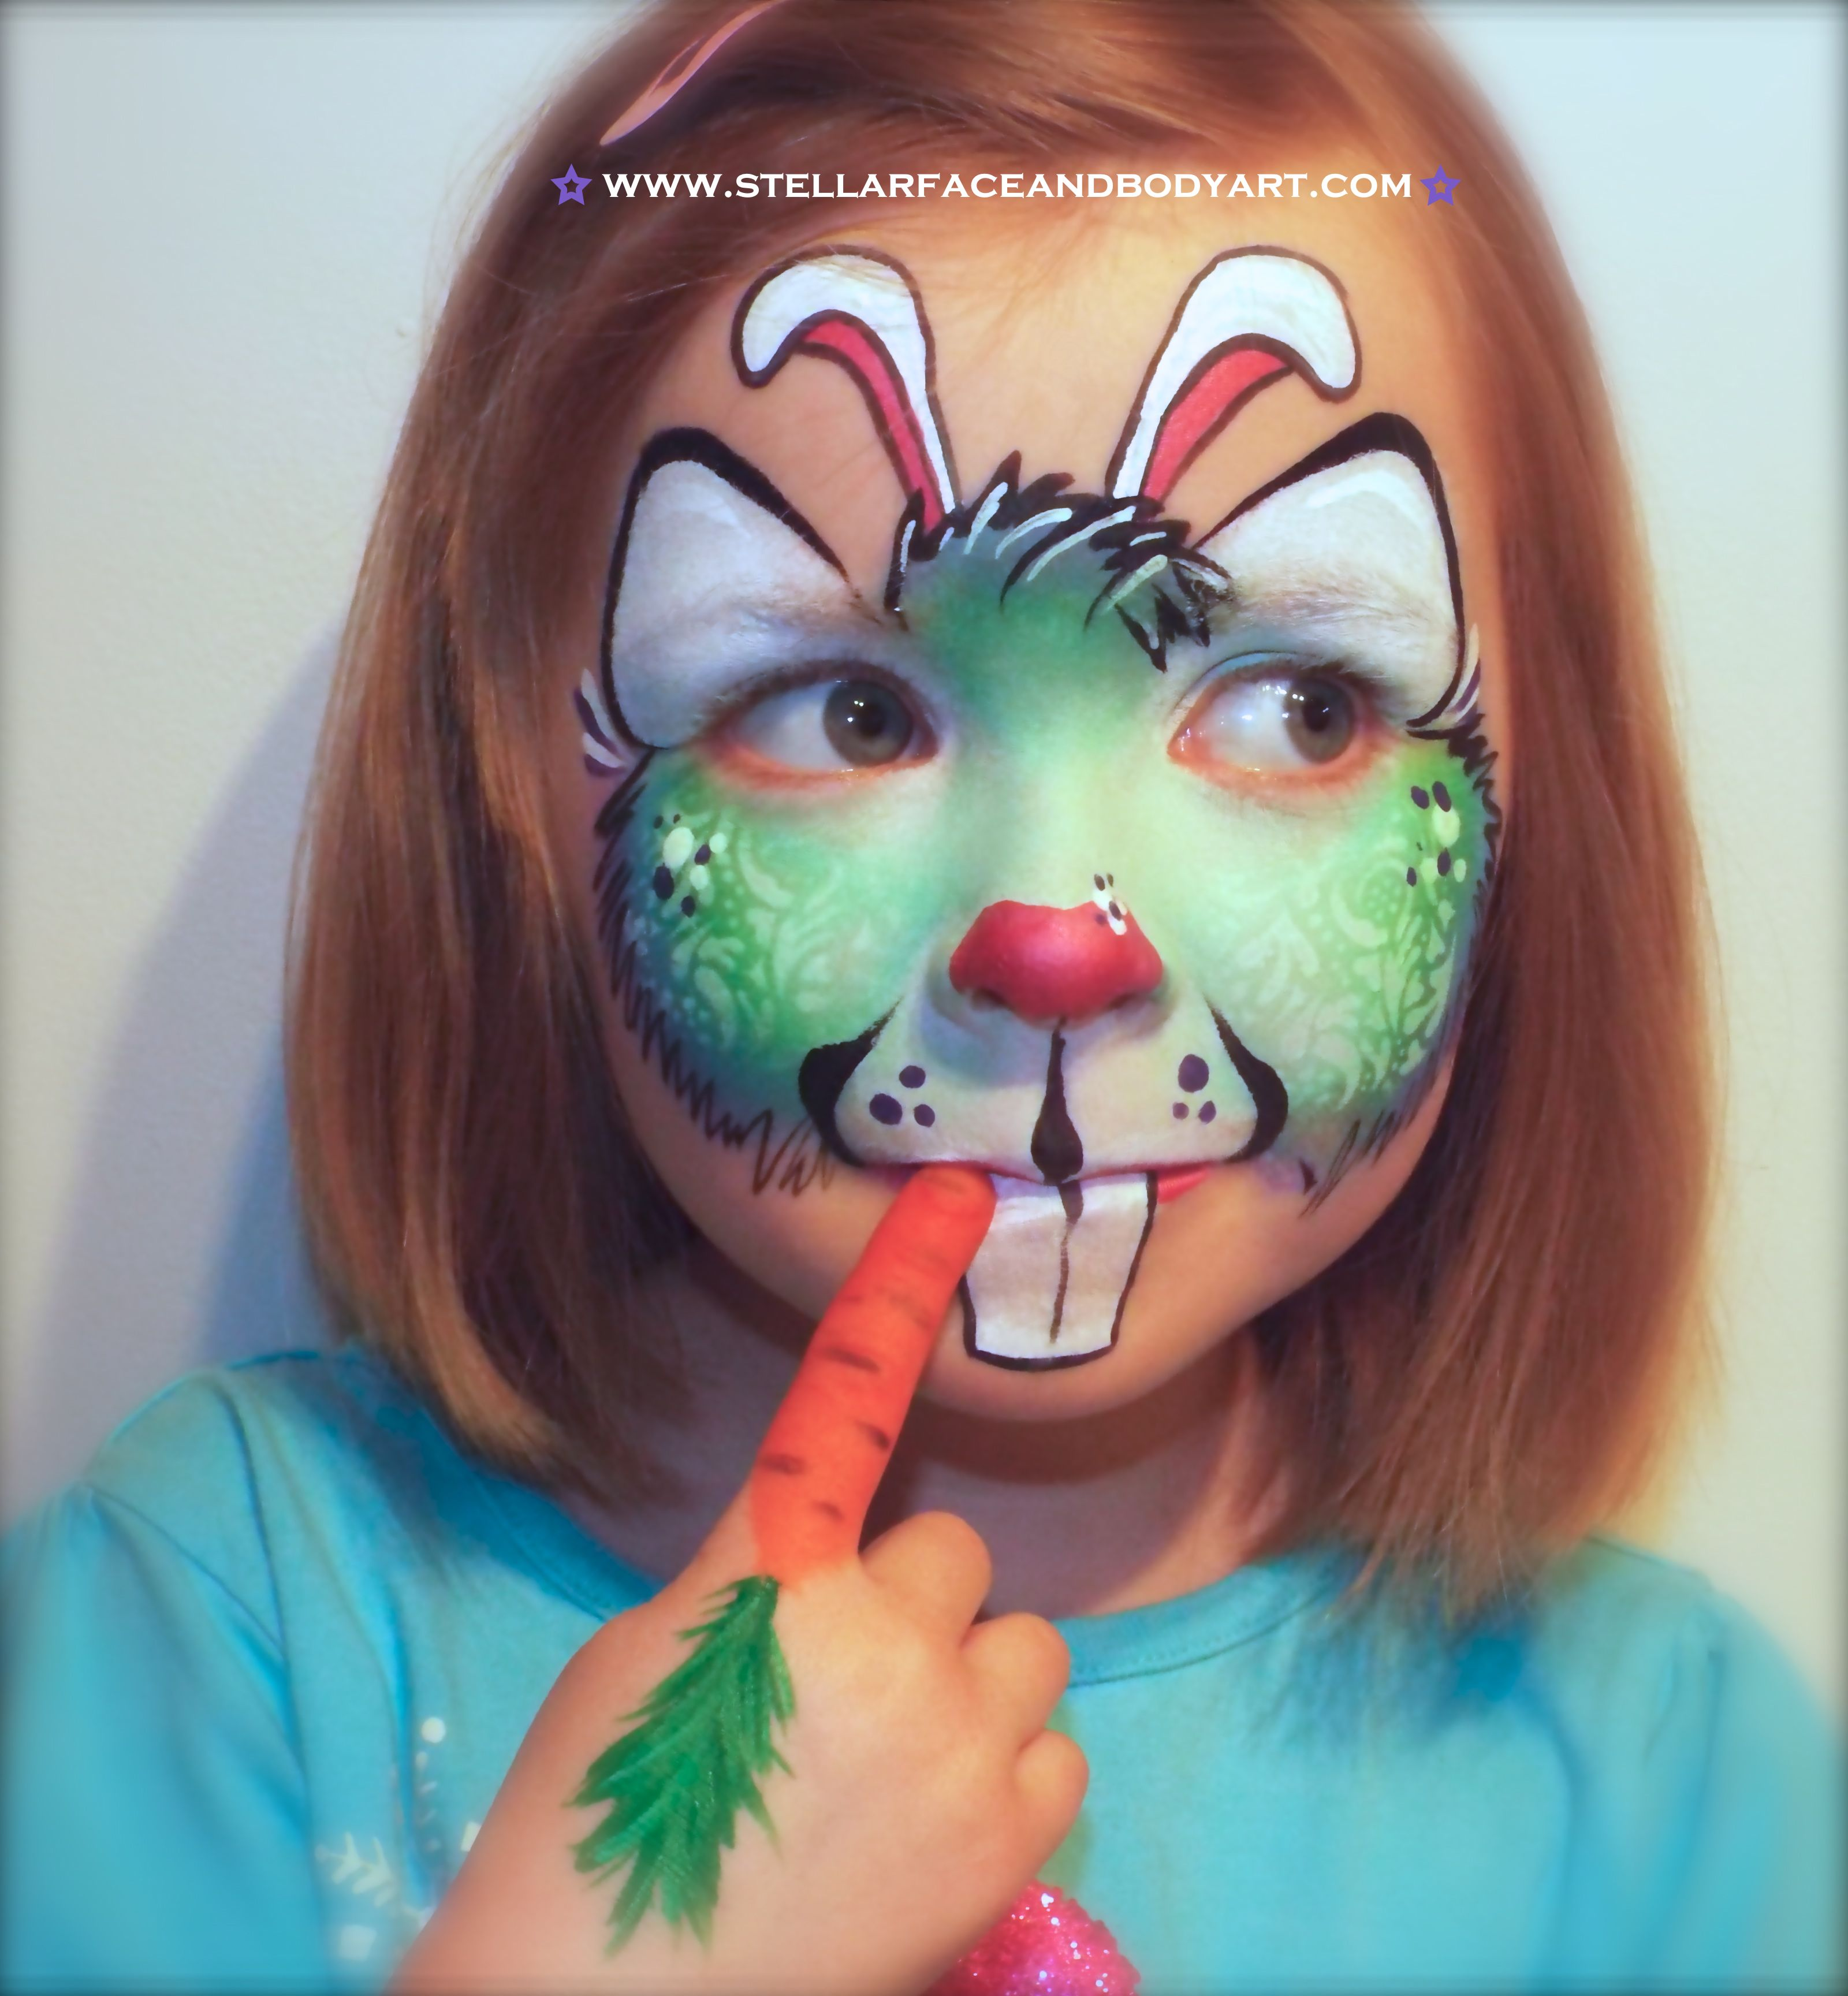 Schmink Ideen Easter Bunny Face Painting Hase Facepainting